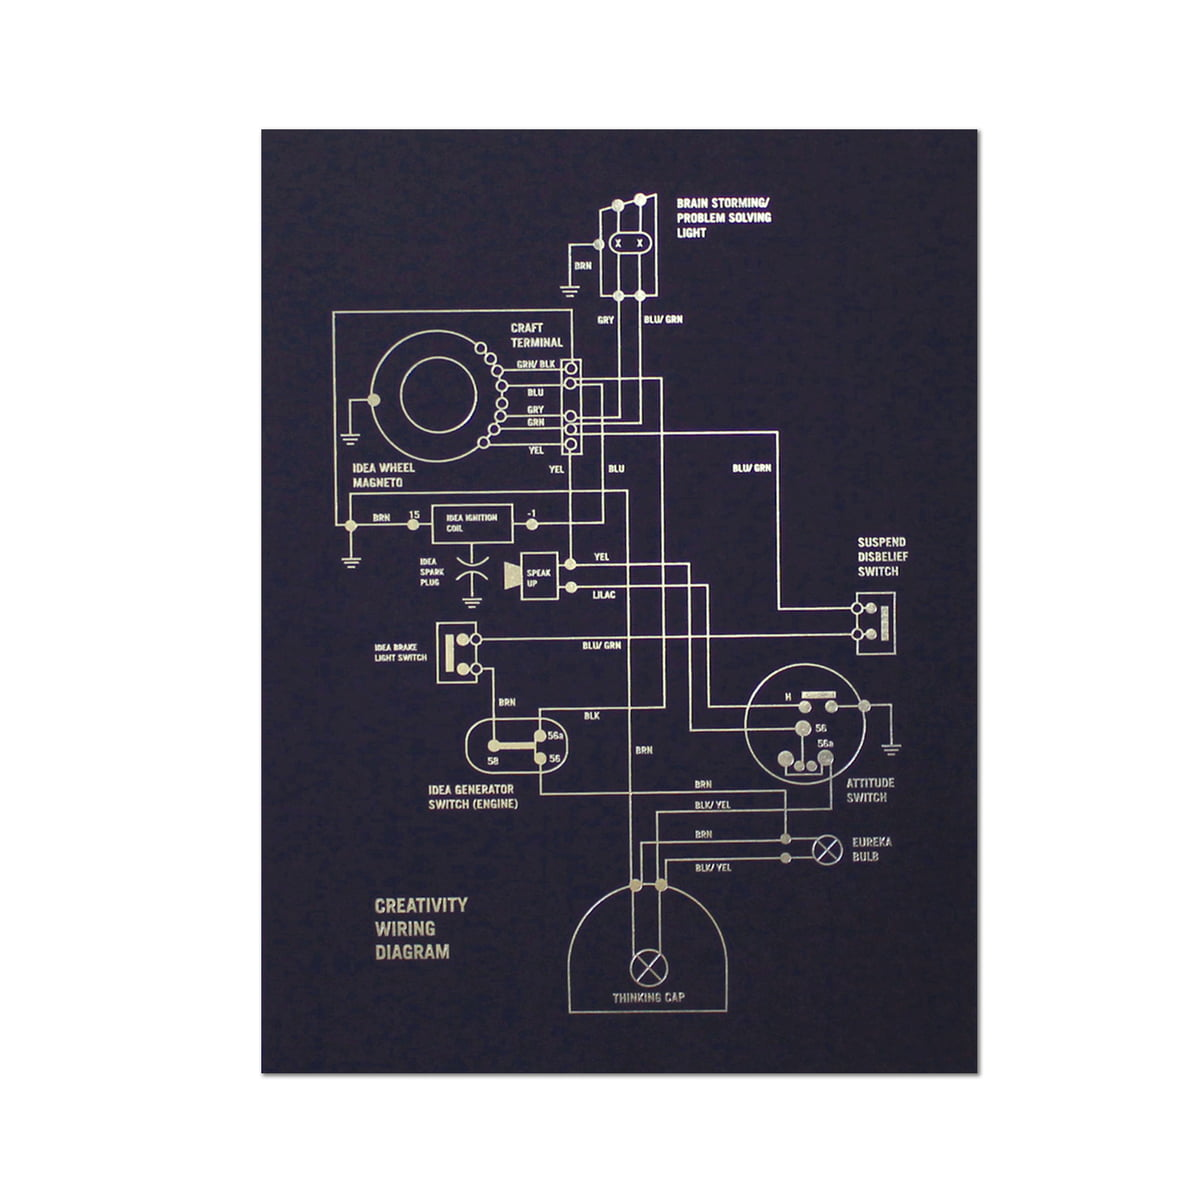 compustar wiring diagram wiring diagram and schematic porsche 1956 1959 wiring diagram poster ynz 39 s